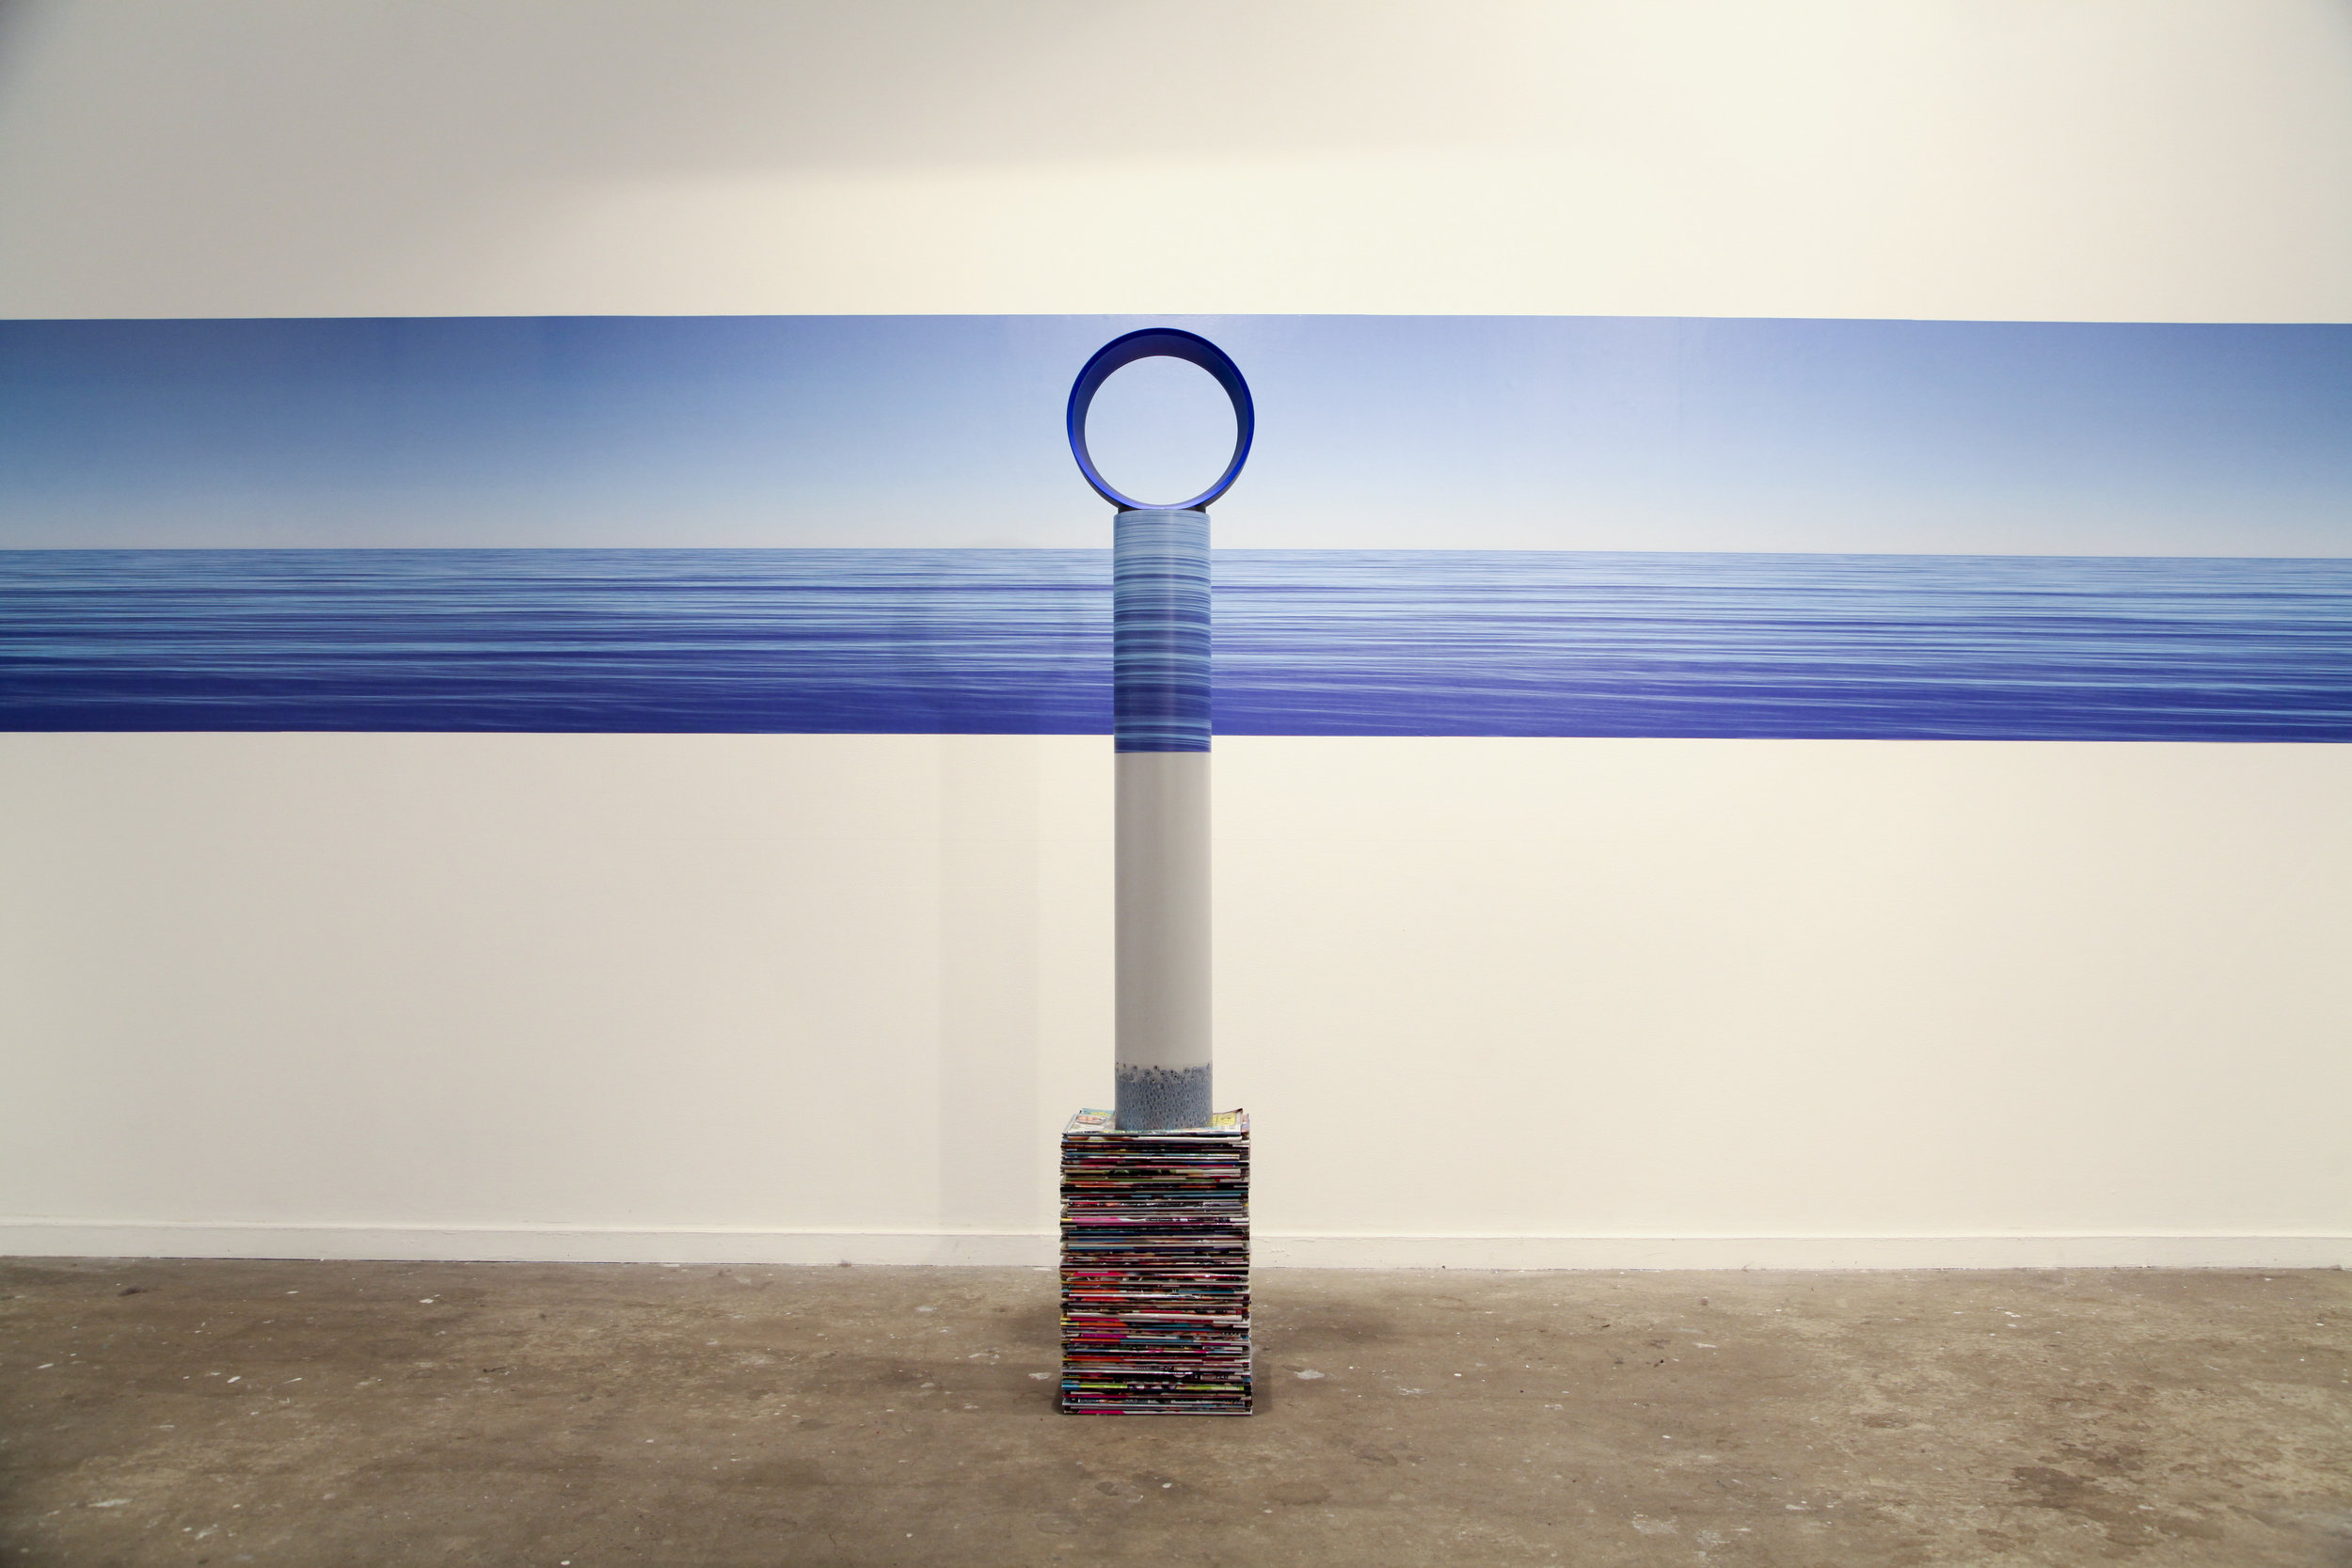 Earth, Water, Air  (foreground) and Horizon  (background), 2013, tabloid magazines (artist's personal collection), PVC pip, printed adhesive vinyl, Dyson Air Multiplier, installation view, MOP Projects, Sydney. Photography: Michael Randall. Copyright JD Reforma